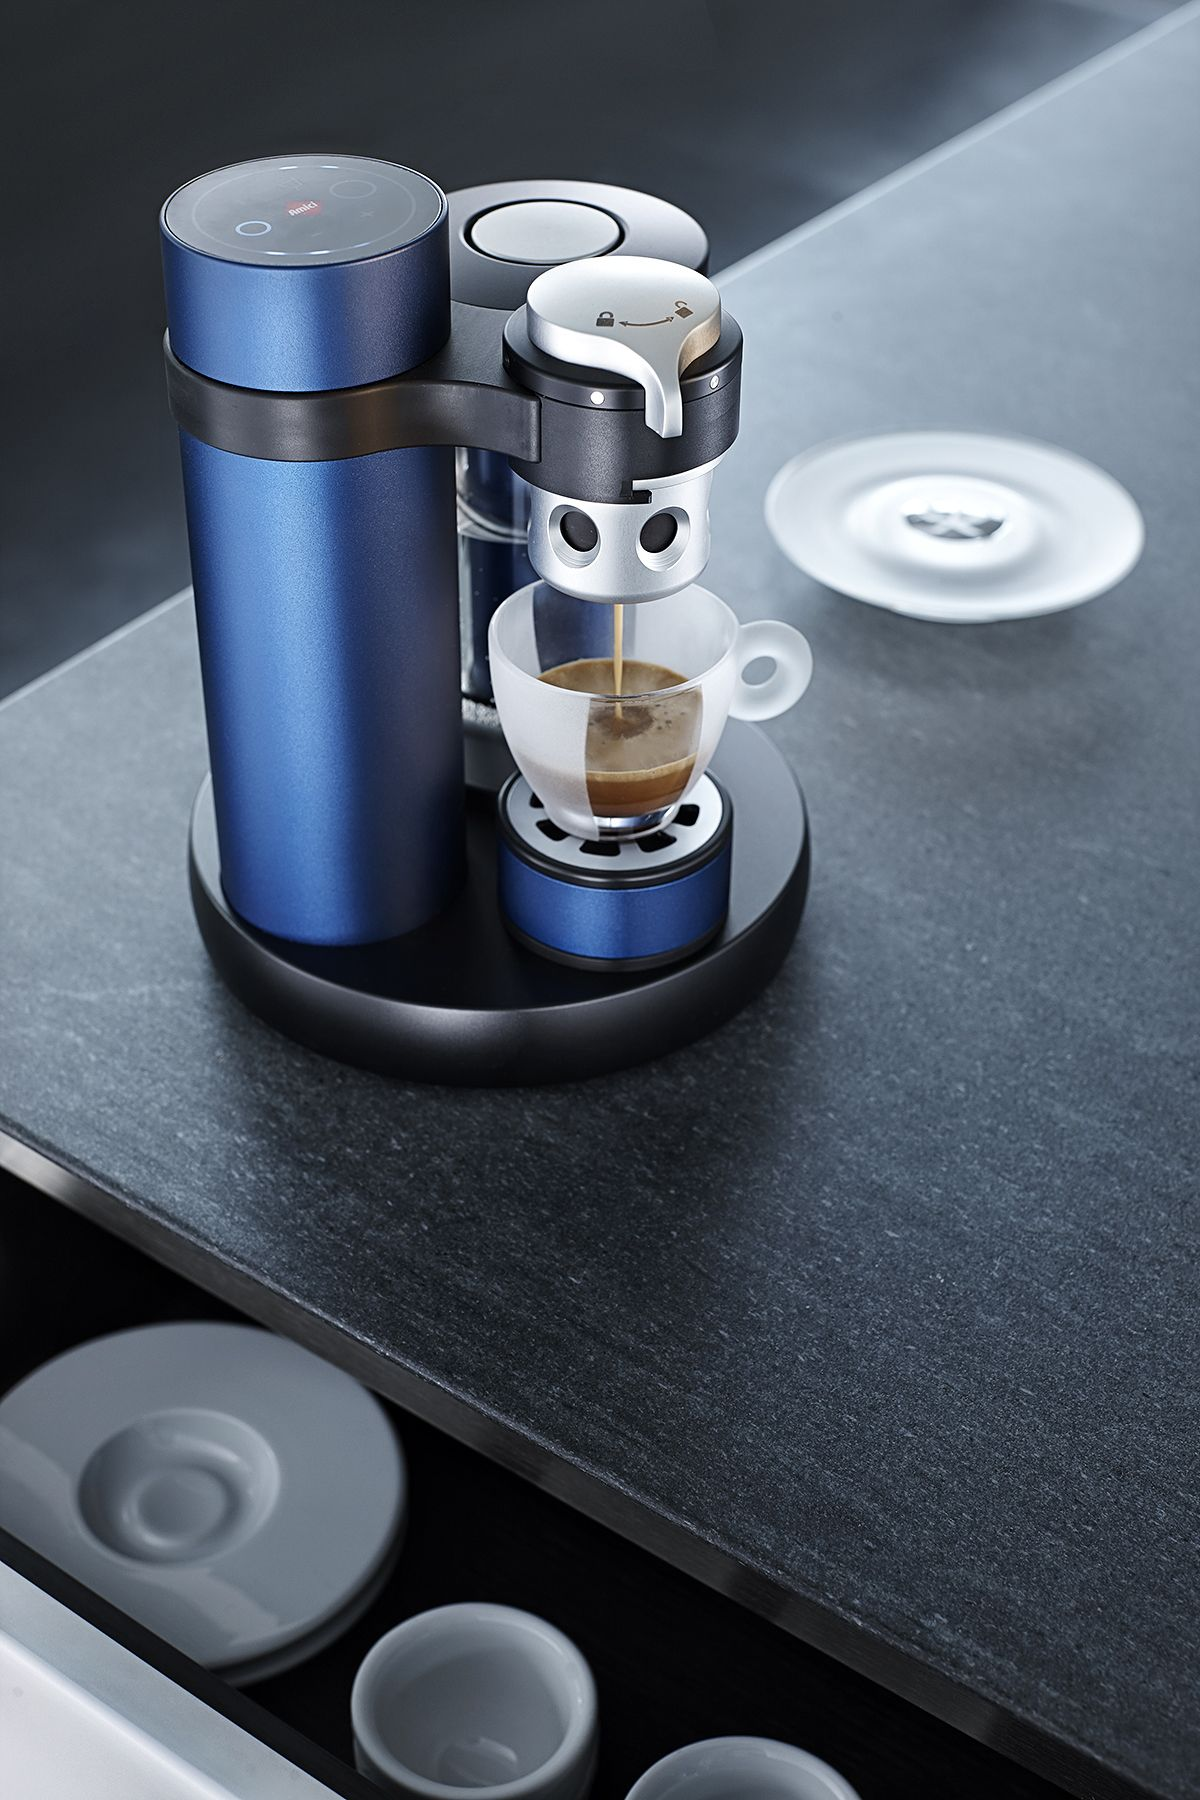 Delightful The Best K Cup Coffee Maker Is A Type Of Coffee Brewers That Makes It Very  Easy And Convenient To Make A Cup Of Coffee.